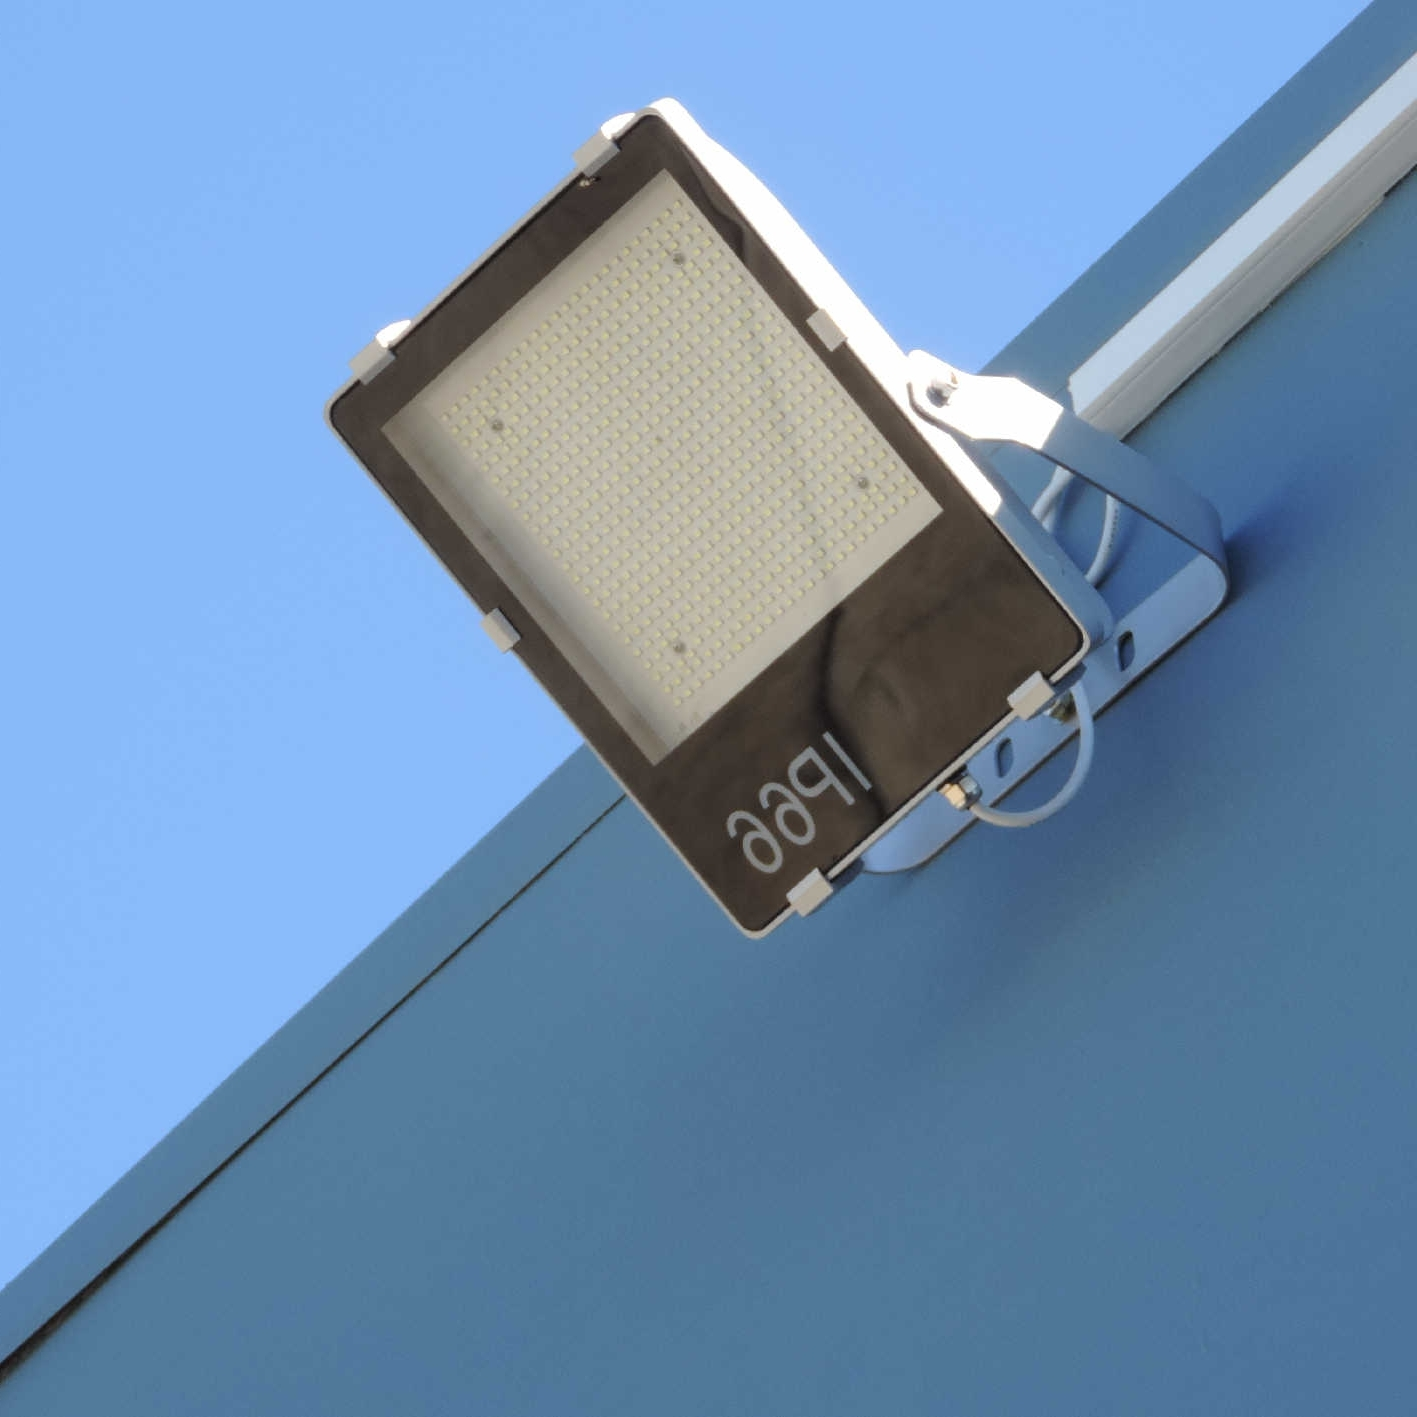 Recent Light : Black Wall Mounted Flood Lights Blue Simple Classic With Regard To Outdoor Wall Flood Lights (View 18 of 20)